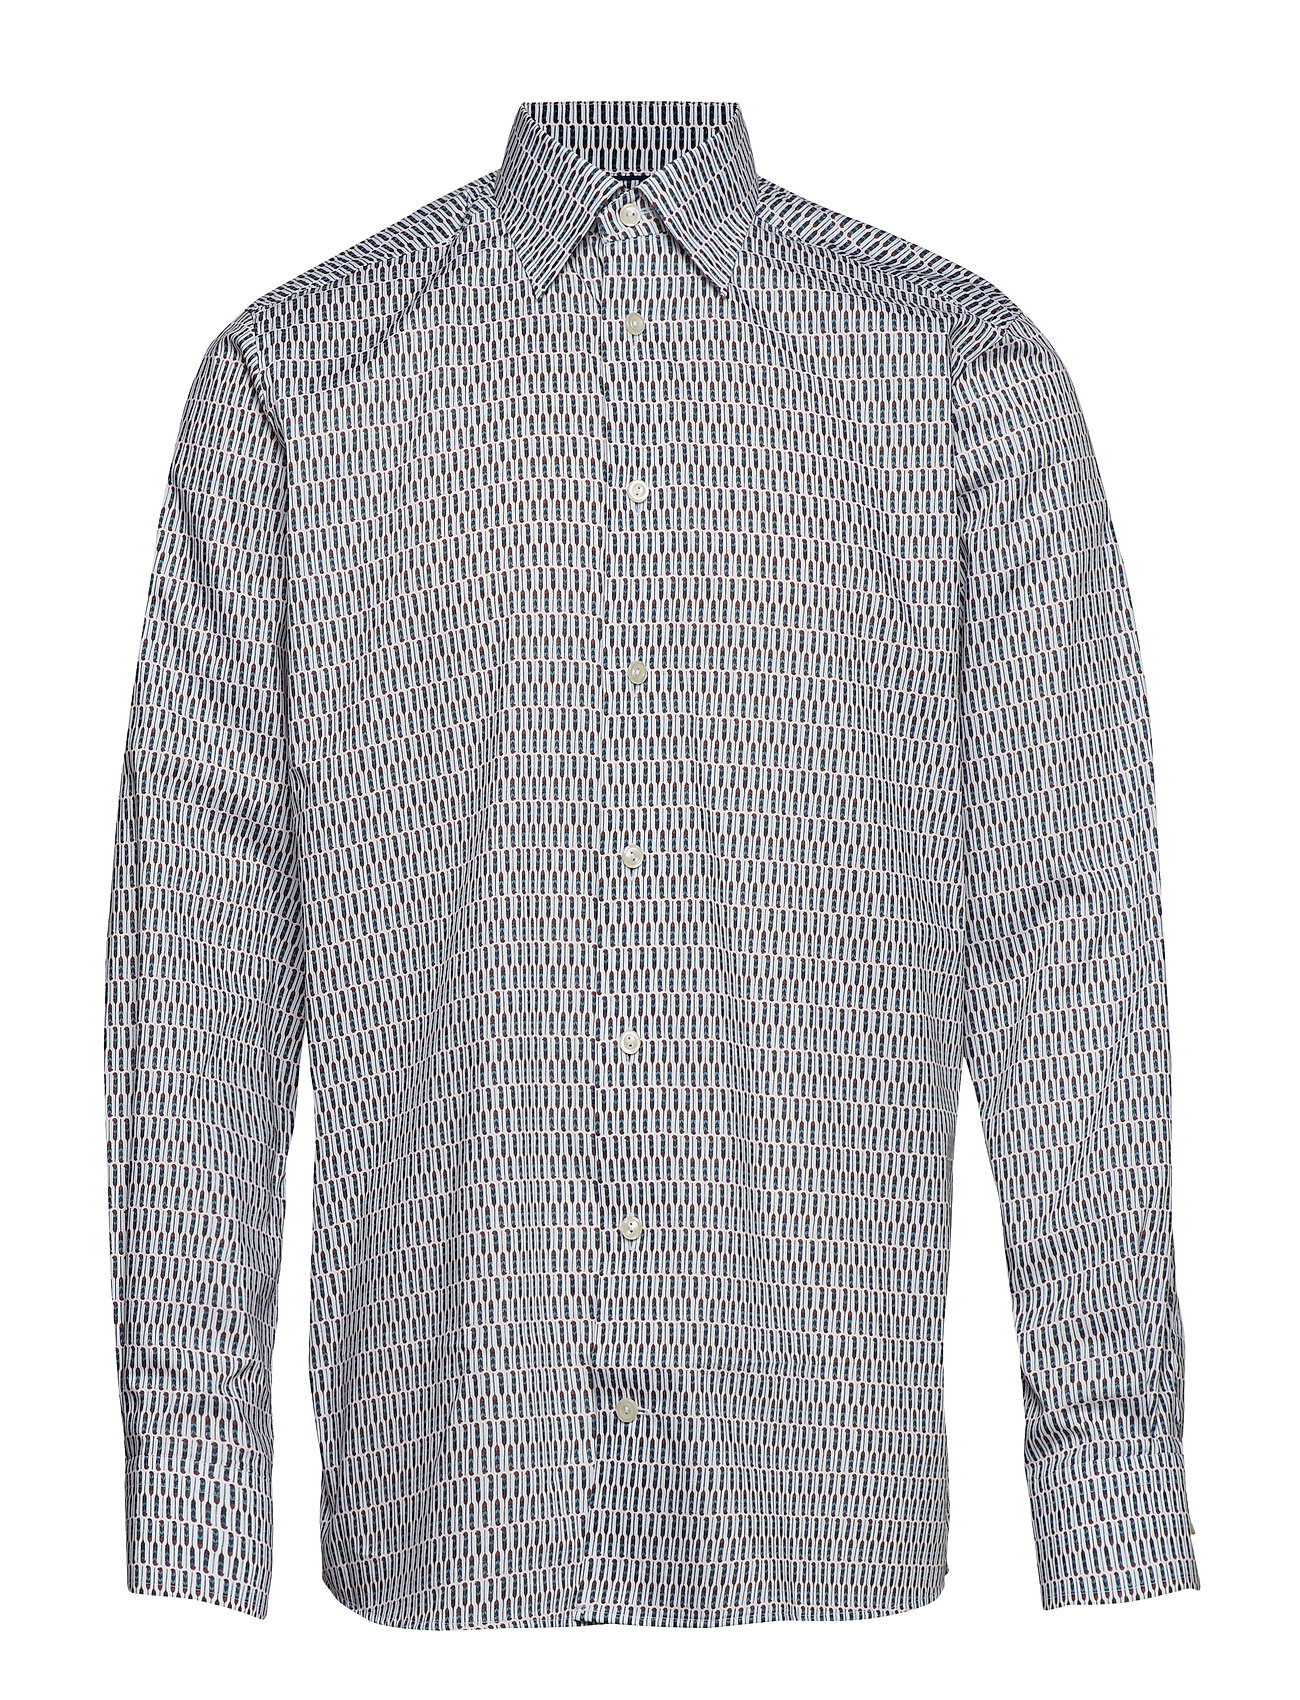 Eton White Graphic Feather Printed Twill Shirt - PINK/RED